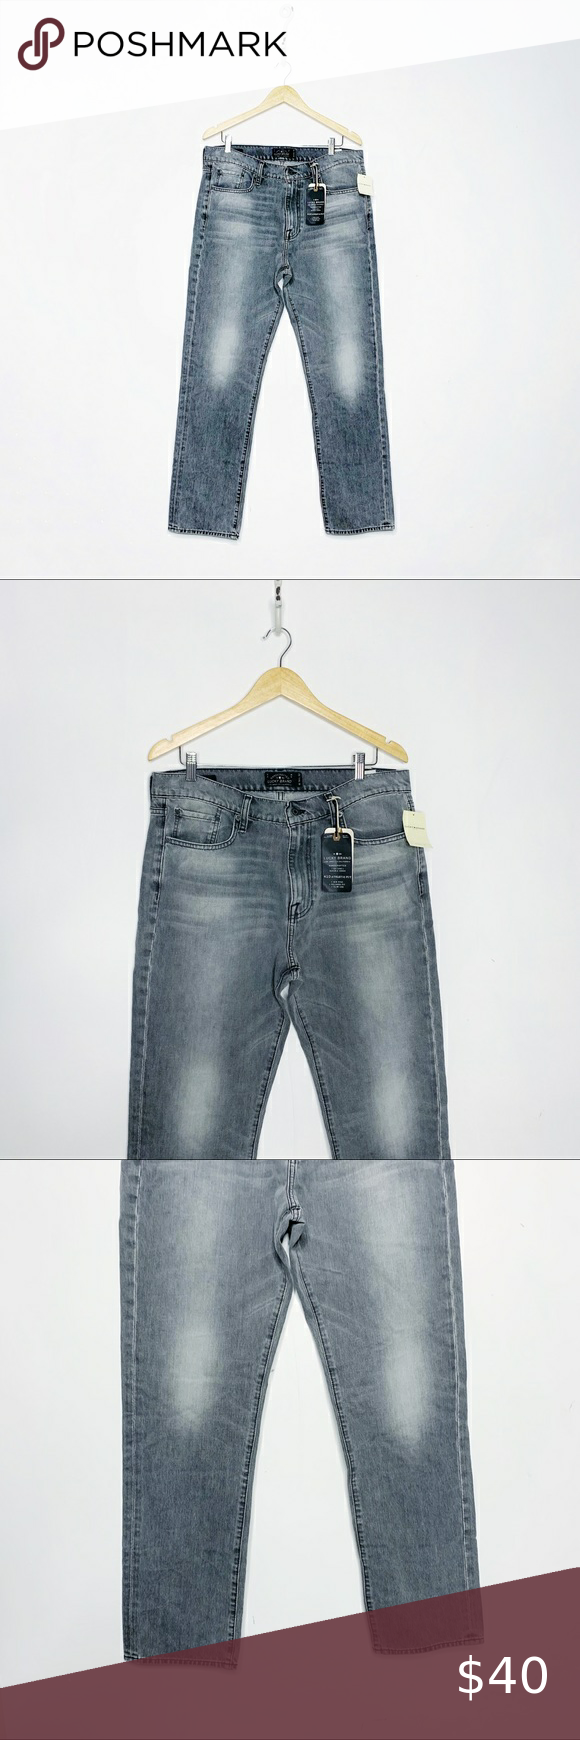 Lucky Brand 410 Athletic Fit Jean in Estero Bluff